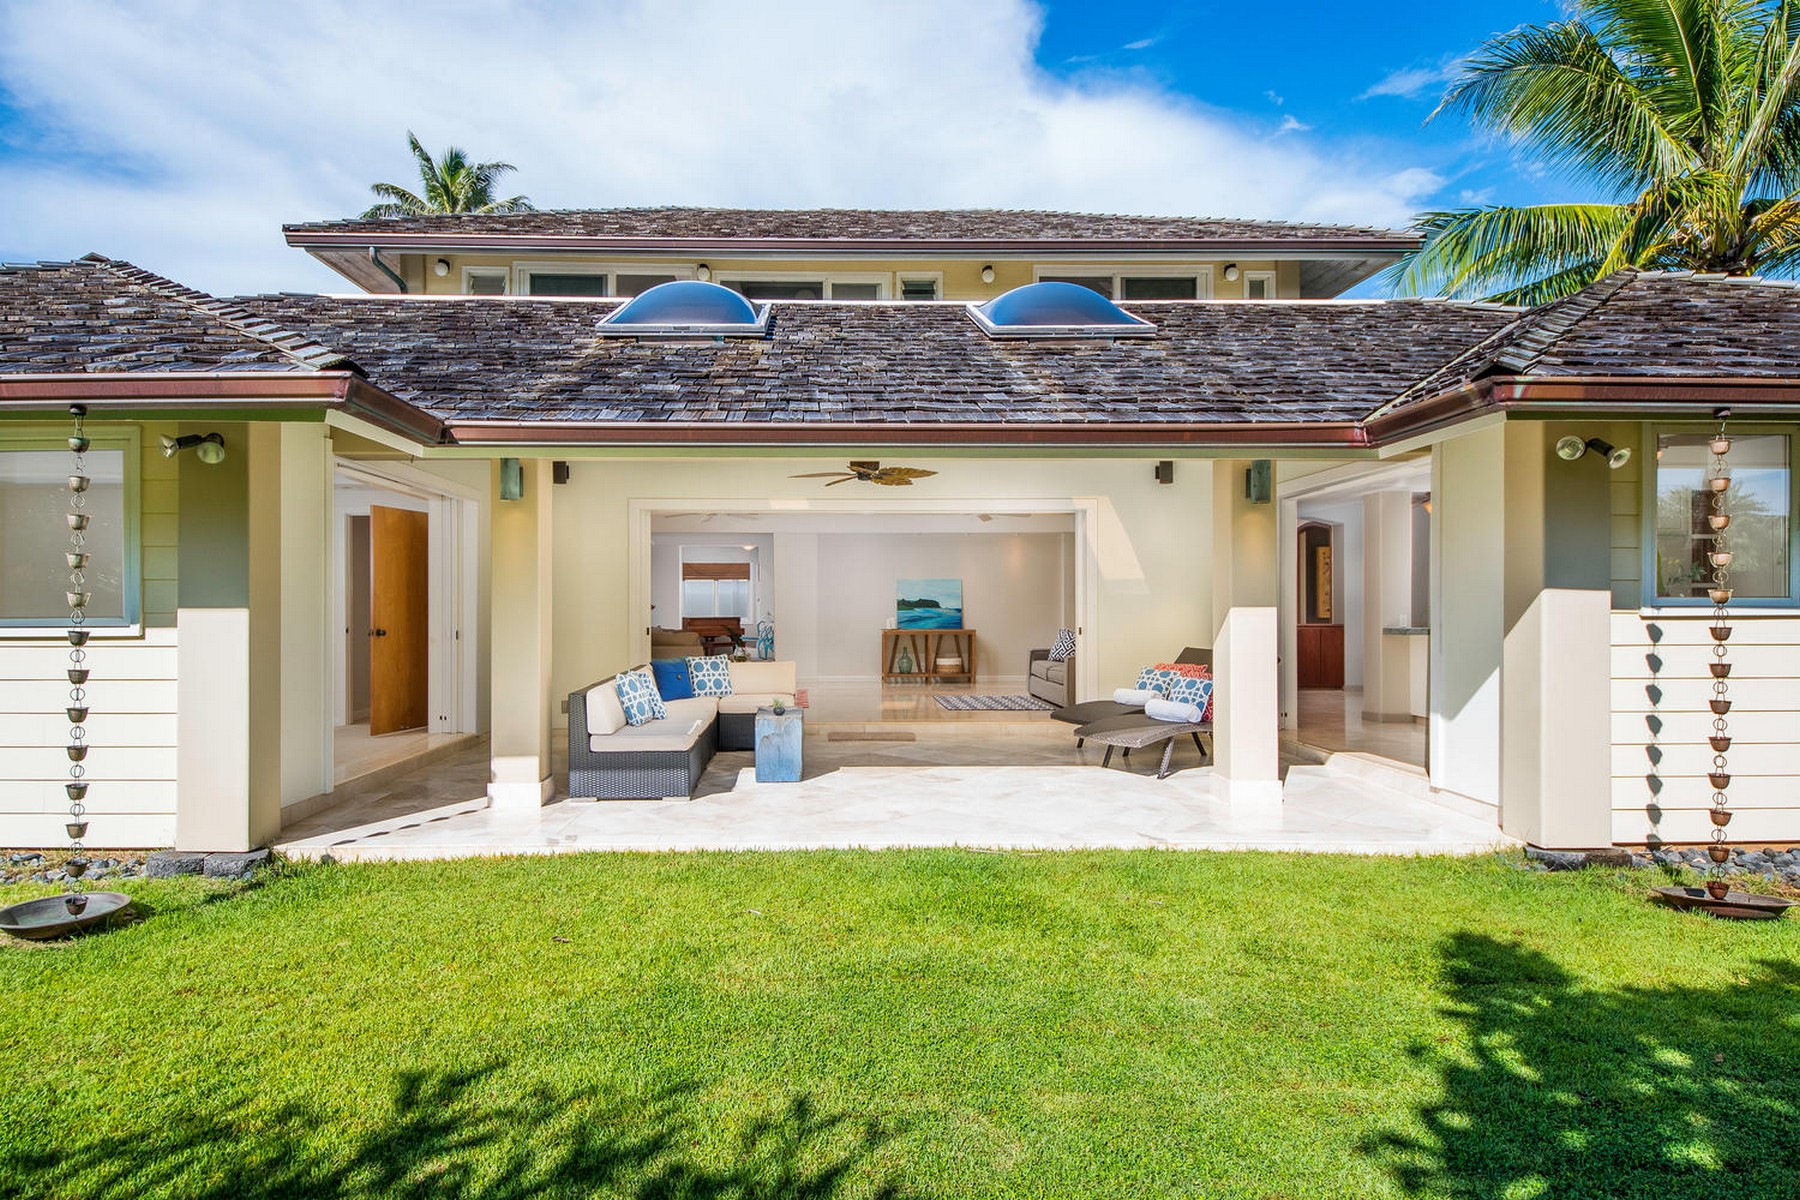 Single Family Home for Sale at Beautiful beachside Kailua home 21 L'Orange Pl Kailua, Hawaii 96734 United States